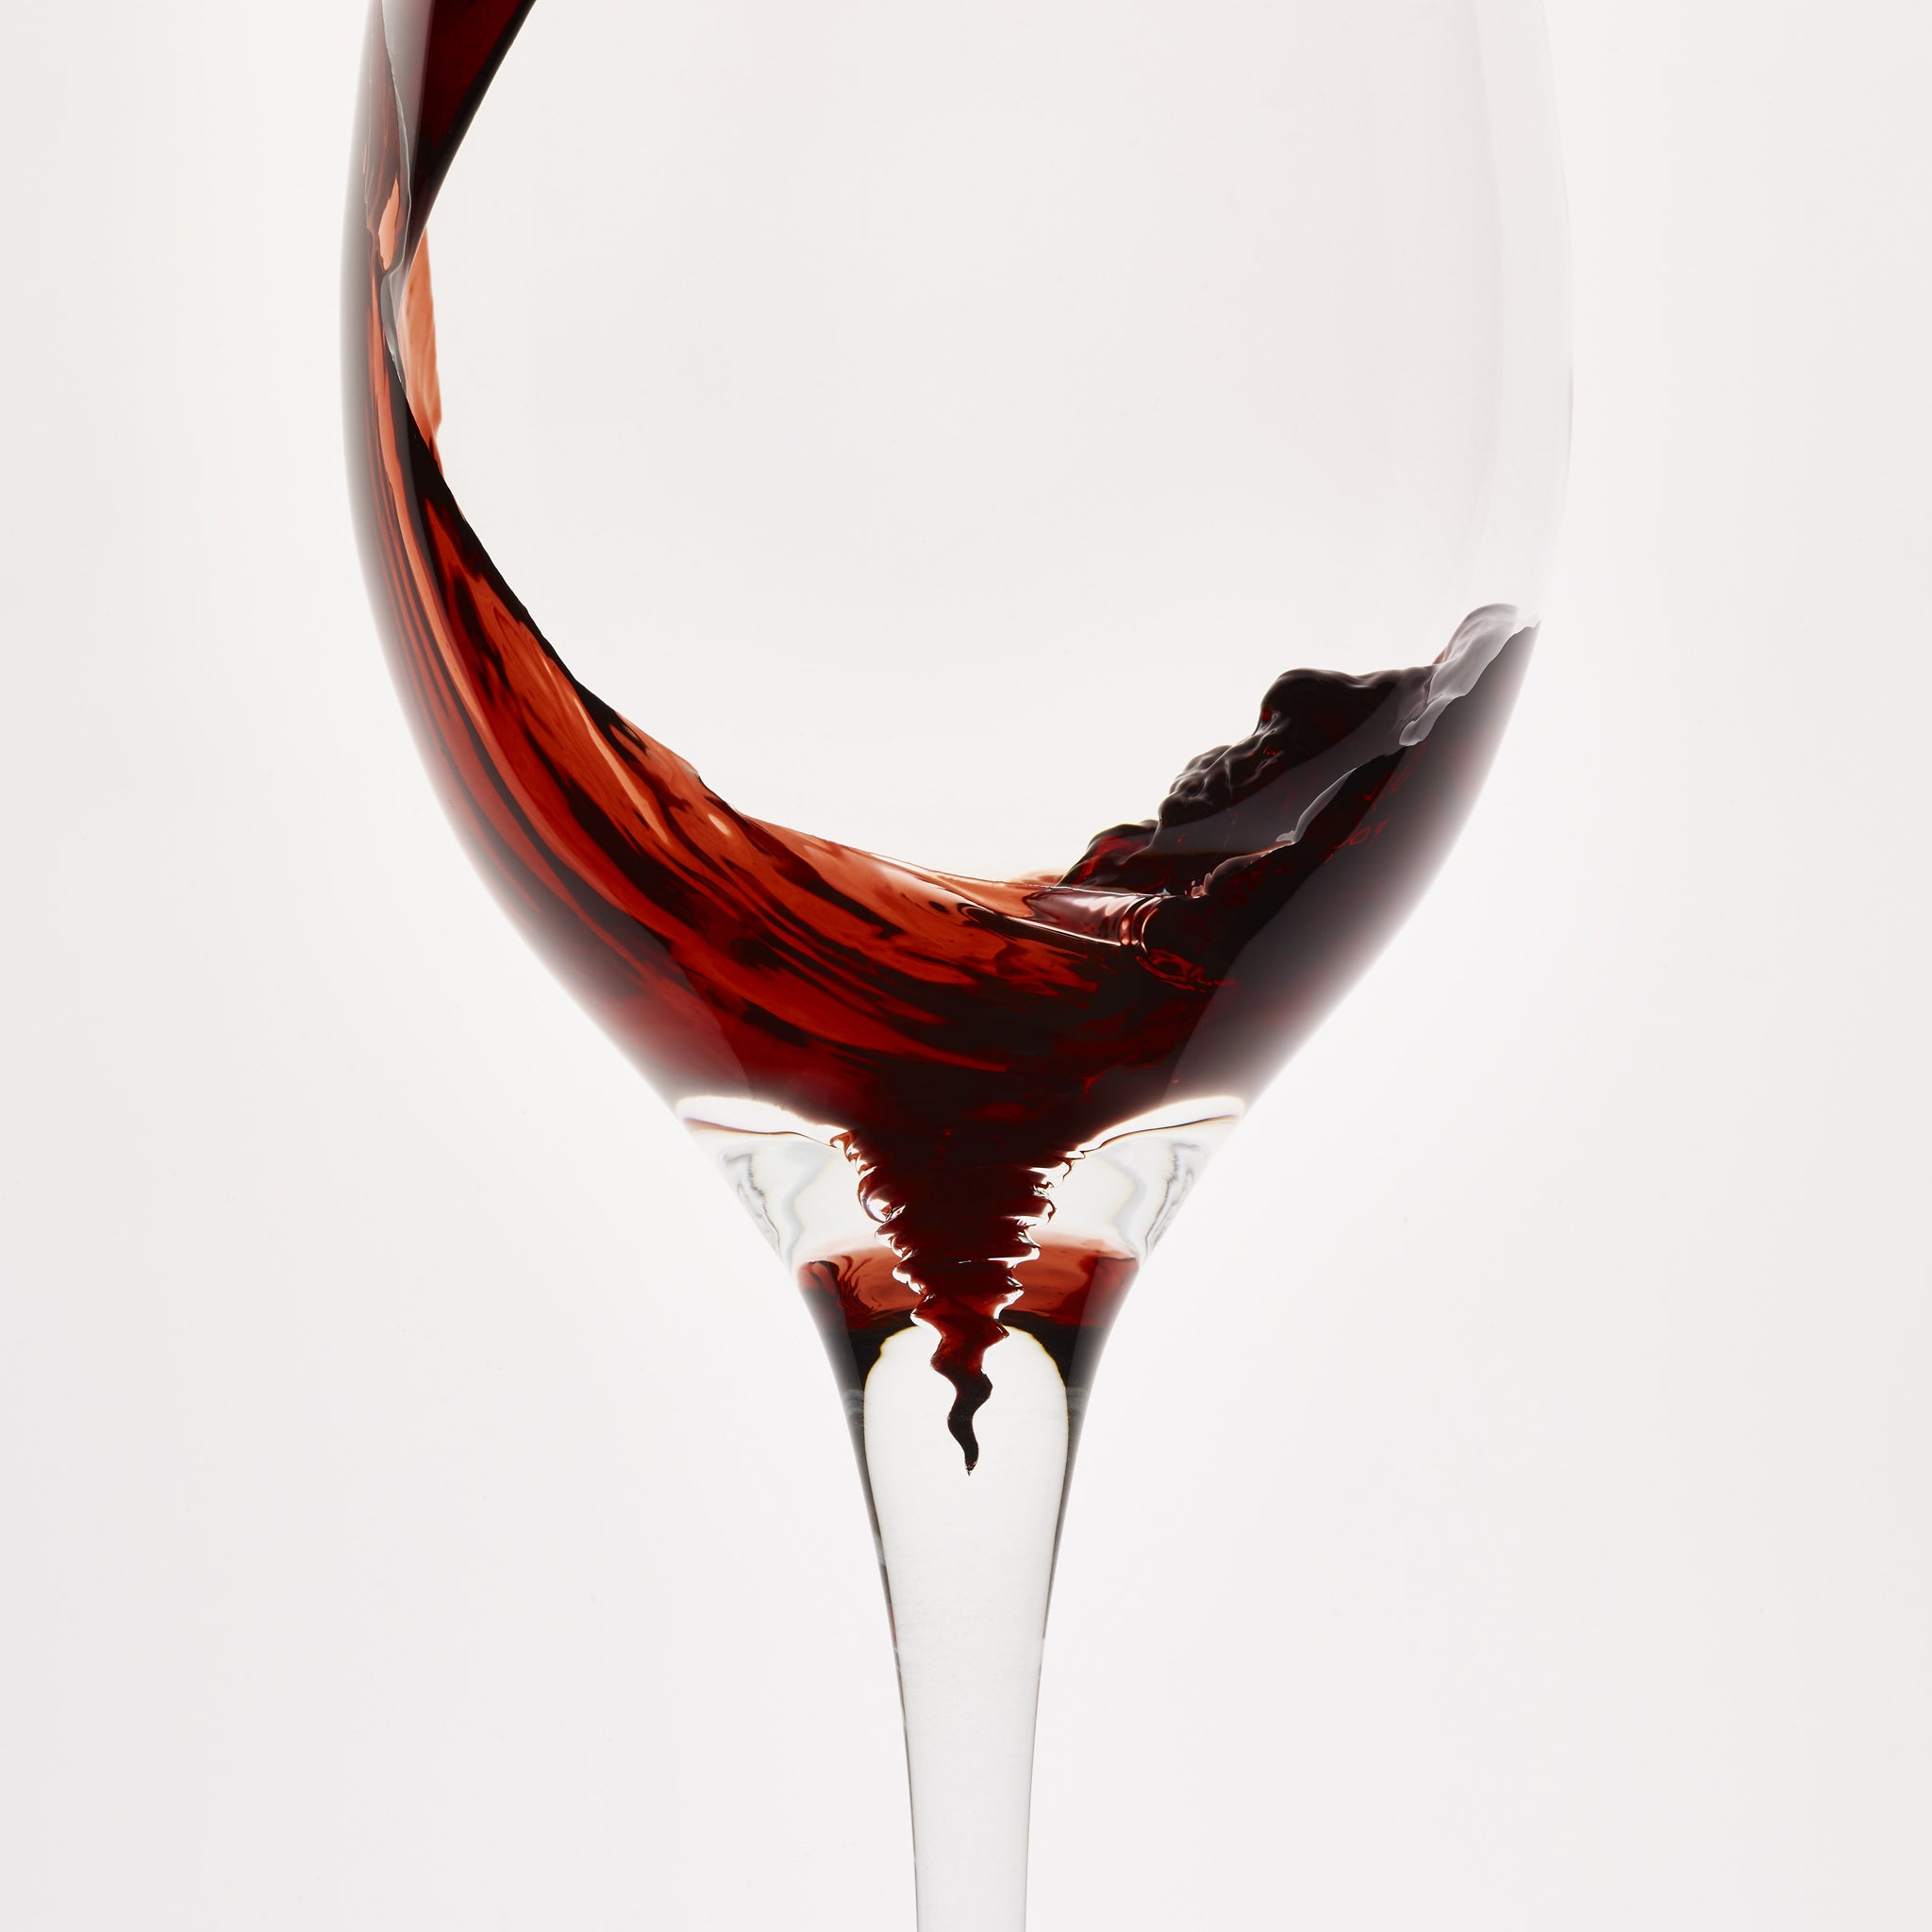 The Spirale Wine Glass catches the sediment in red wine